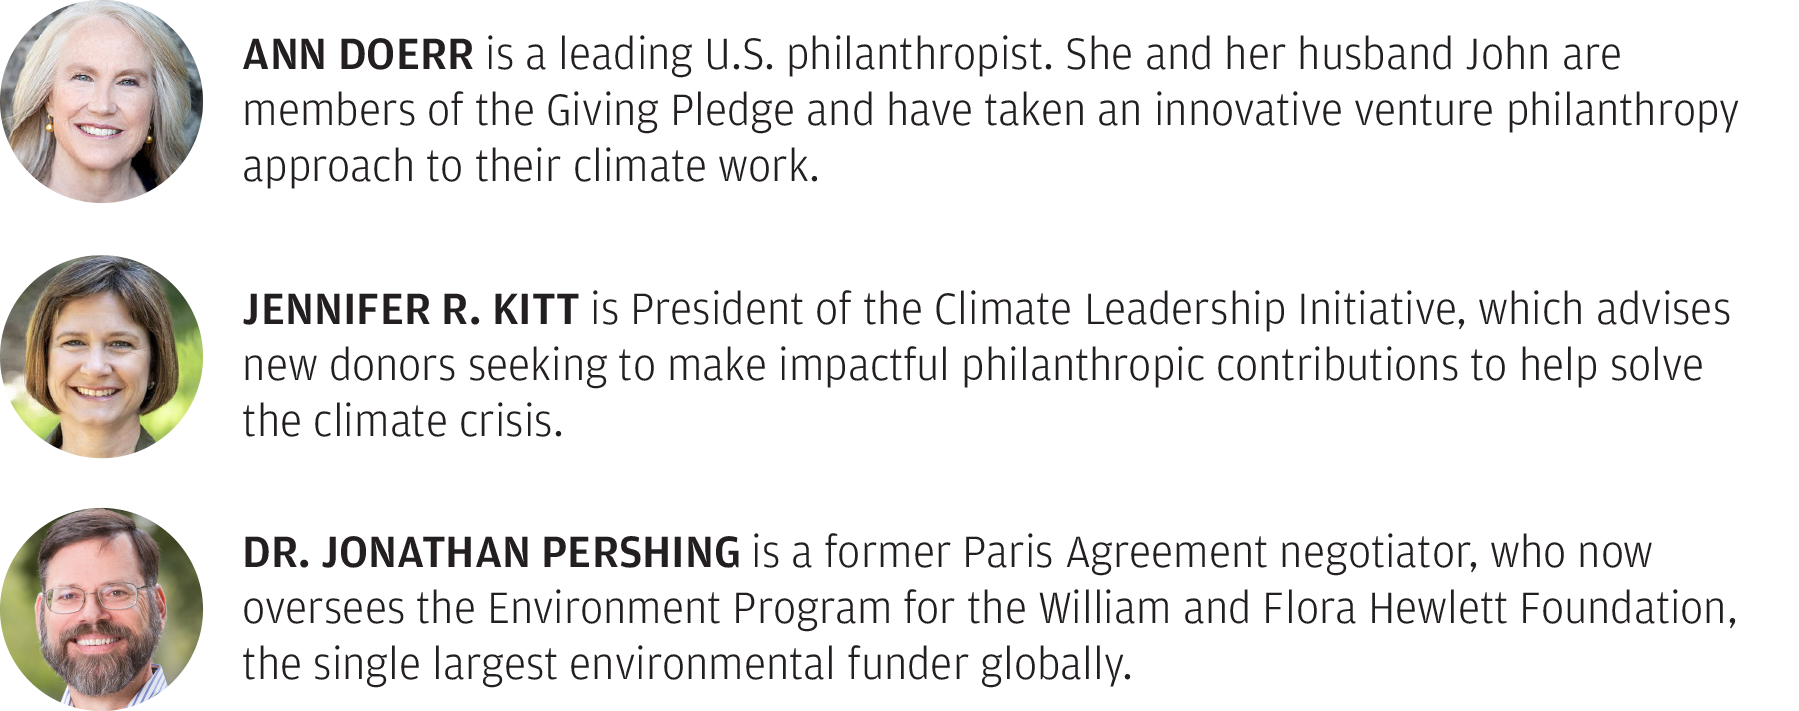 Ann Doerr is a leading U.S. philanthropist. She and her husband John are members of the Giving Pledge and have taken an innovative venture philanthropy approach to their climate work. Jennifer R. Kitt is President of the Climate Leadership Initiative, which advises new donors seeking to make impactful philanthropic contributions to help solve the climate crisis. Dr. Jonathan Pershing is a former Paris Agreement negotiator, who now oversees the Environment Program for the William and Flora Hewlett Foundation, the single largest environmental funder globally.